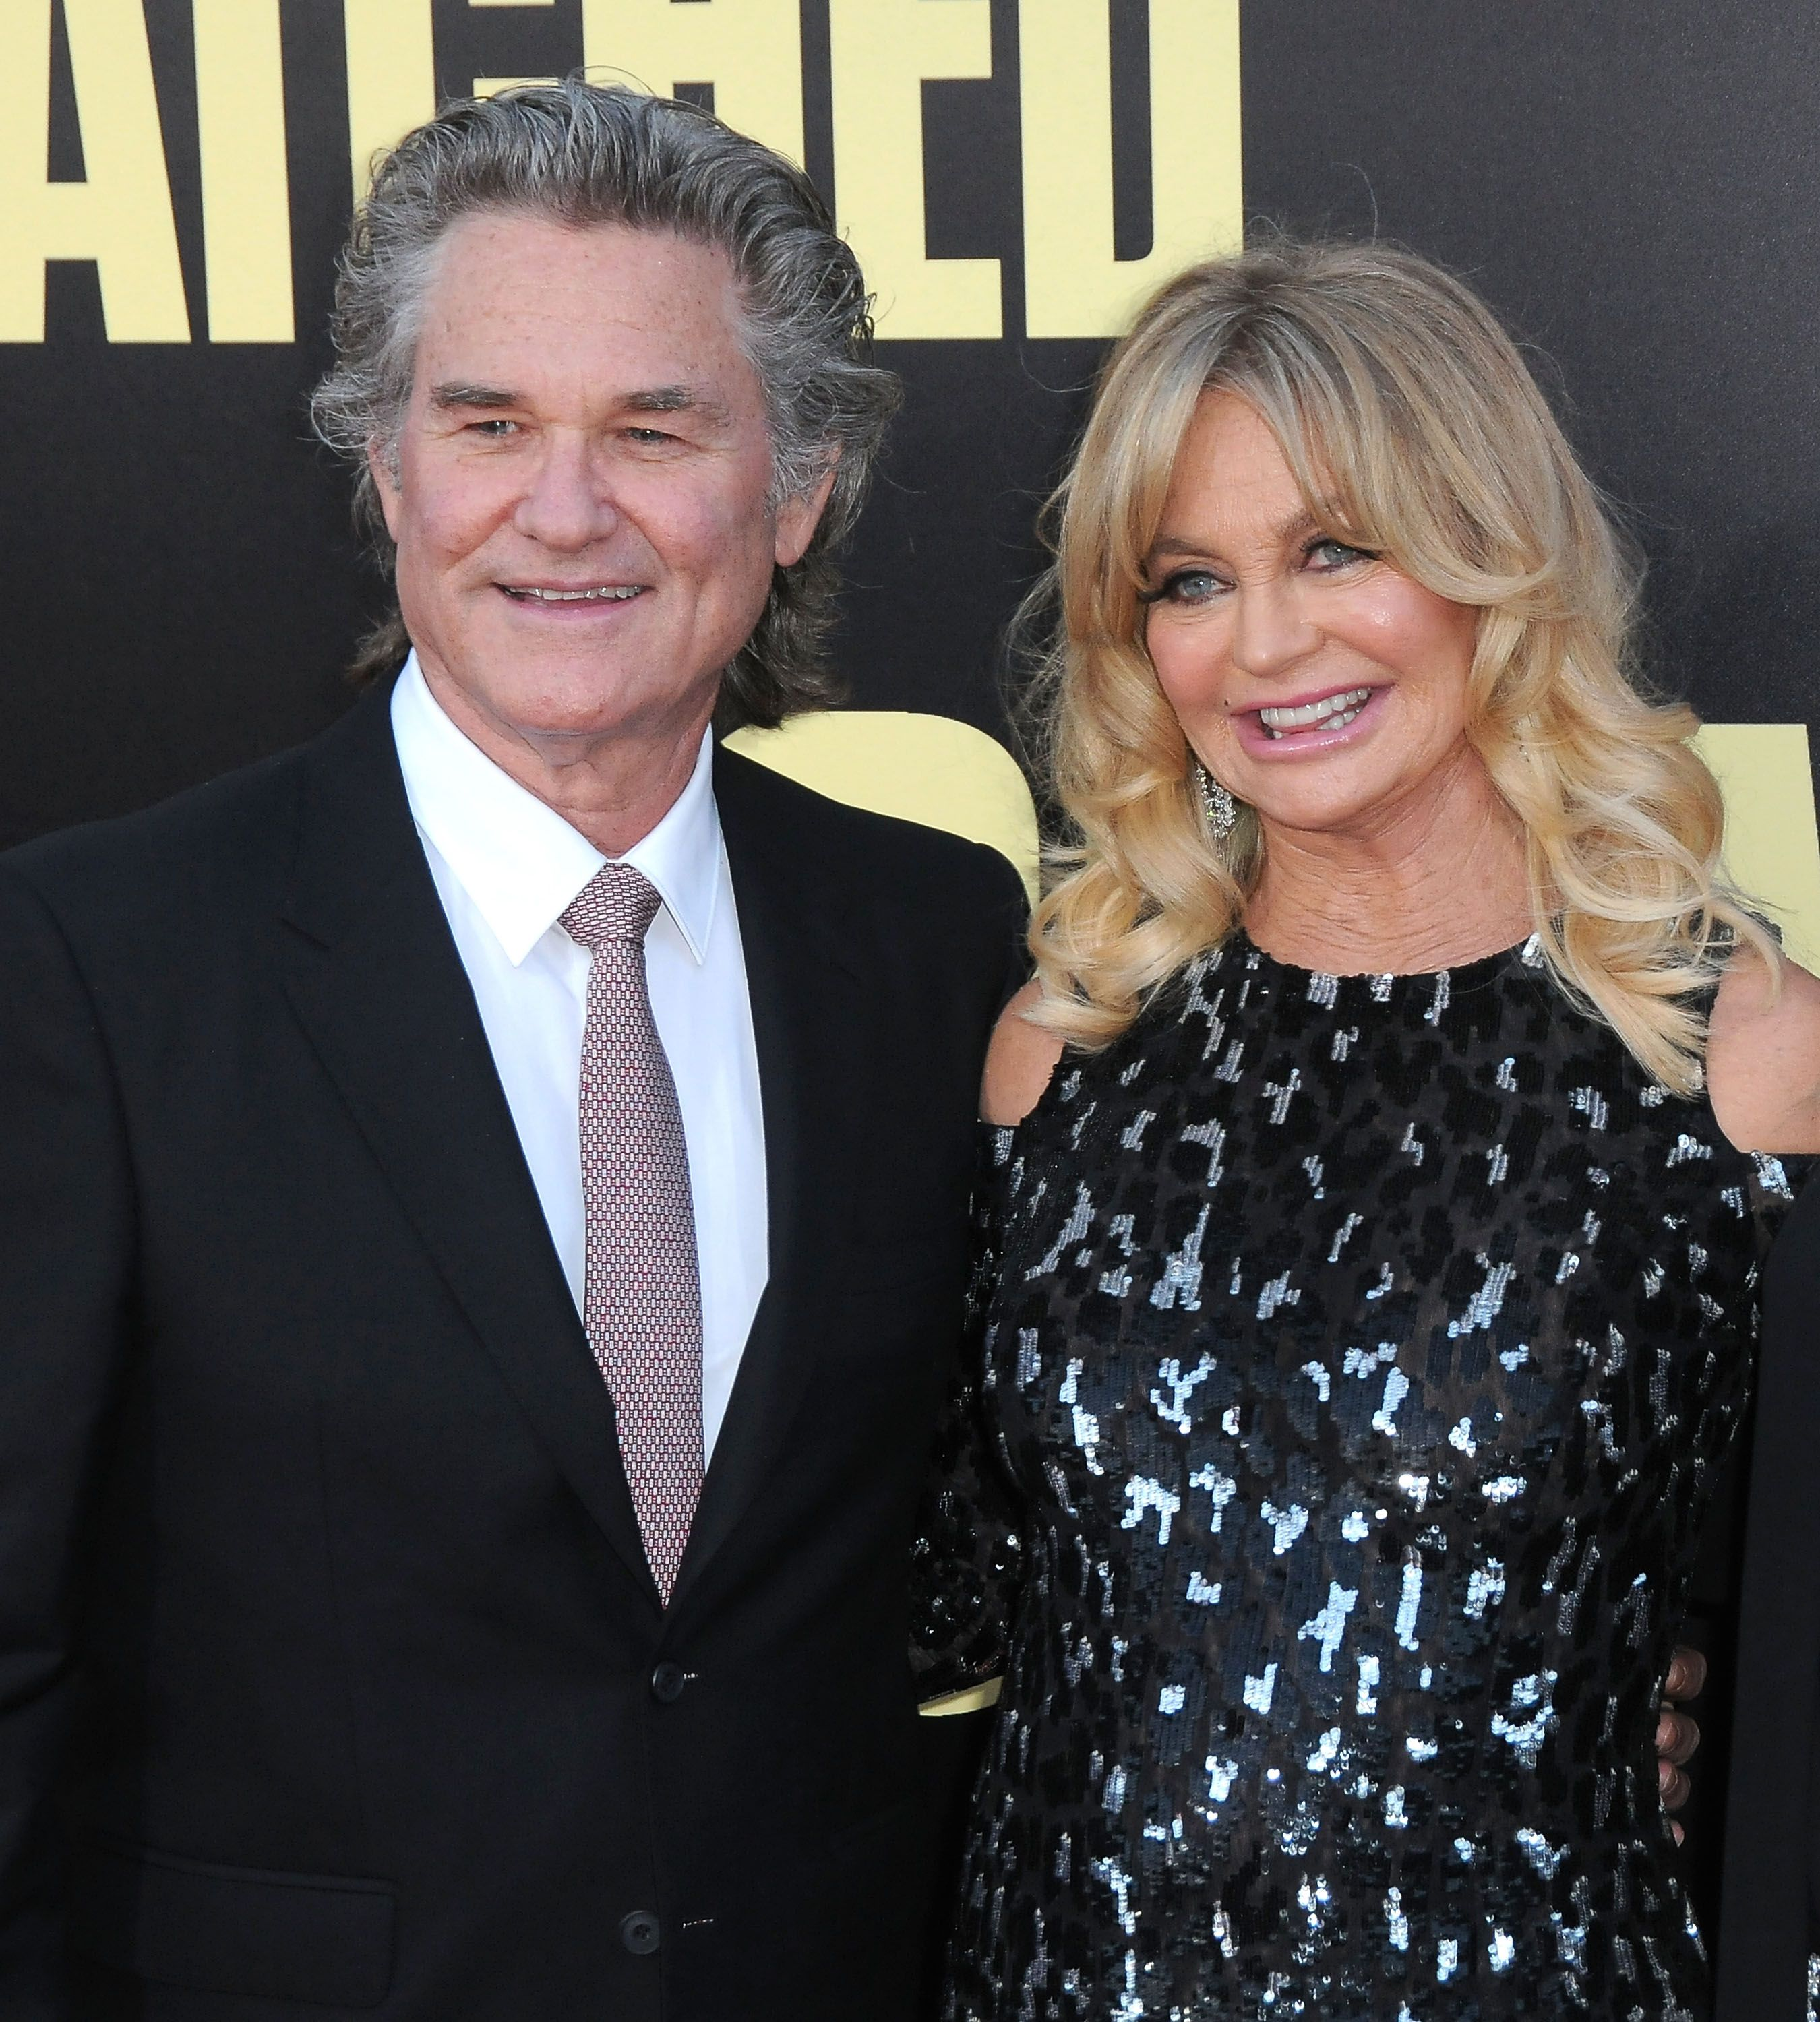 Kurt Russell and Goldie Hawn at the premiere of 'Snatched' in 2017 in Westwood, California | Source: Getty Images